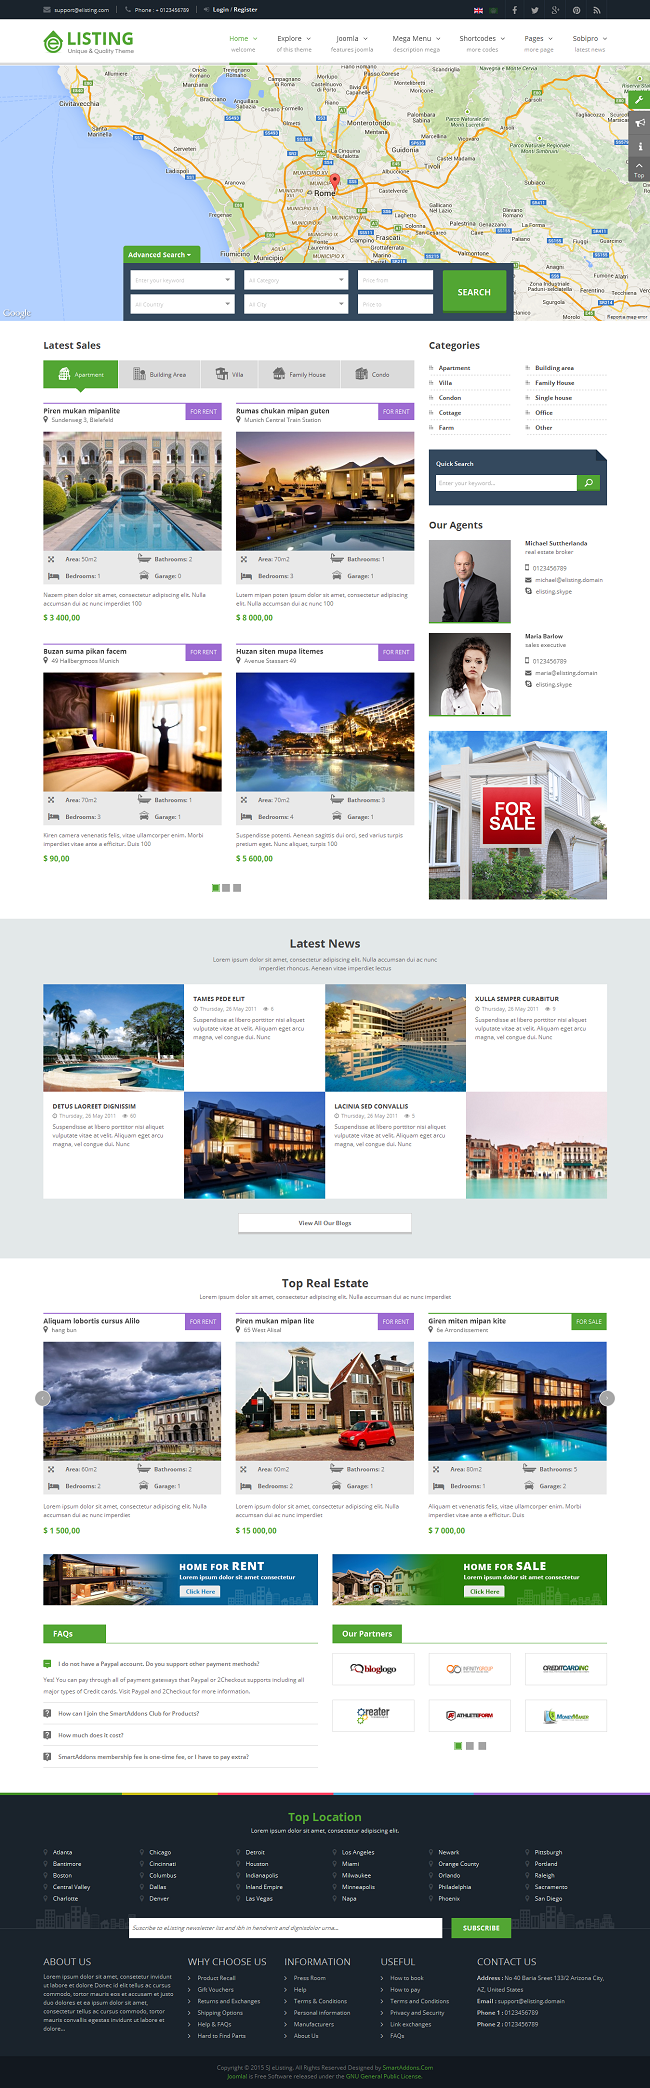 SJ eListing - Responsive Joomla Estate Template - 02_index-wide-layout.png